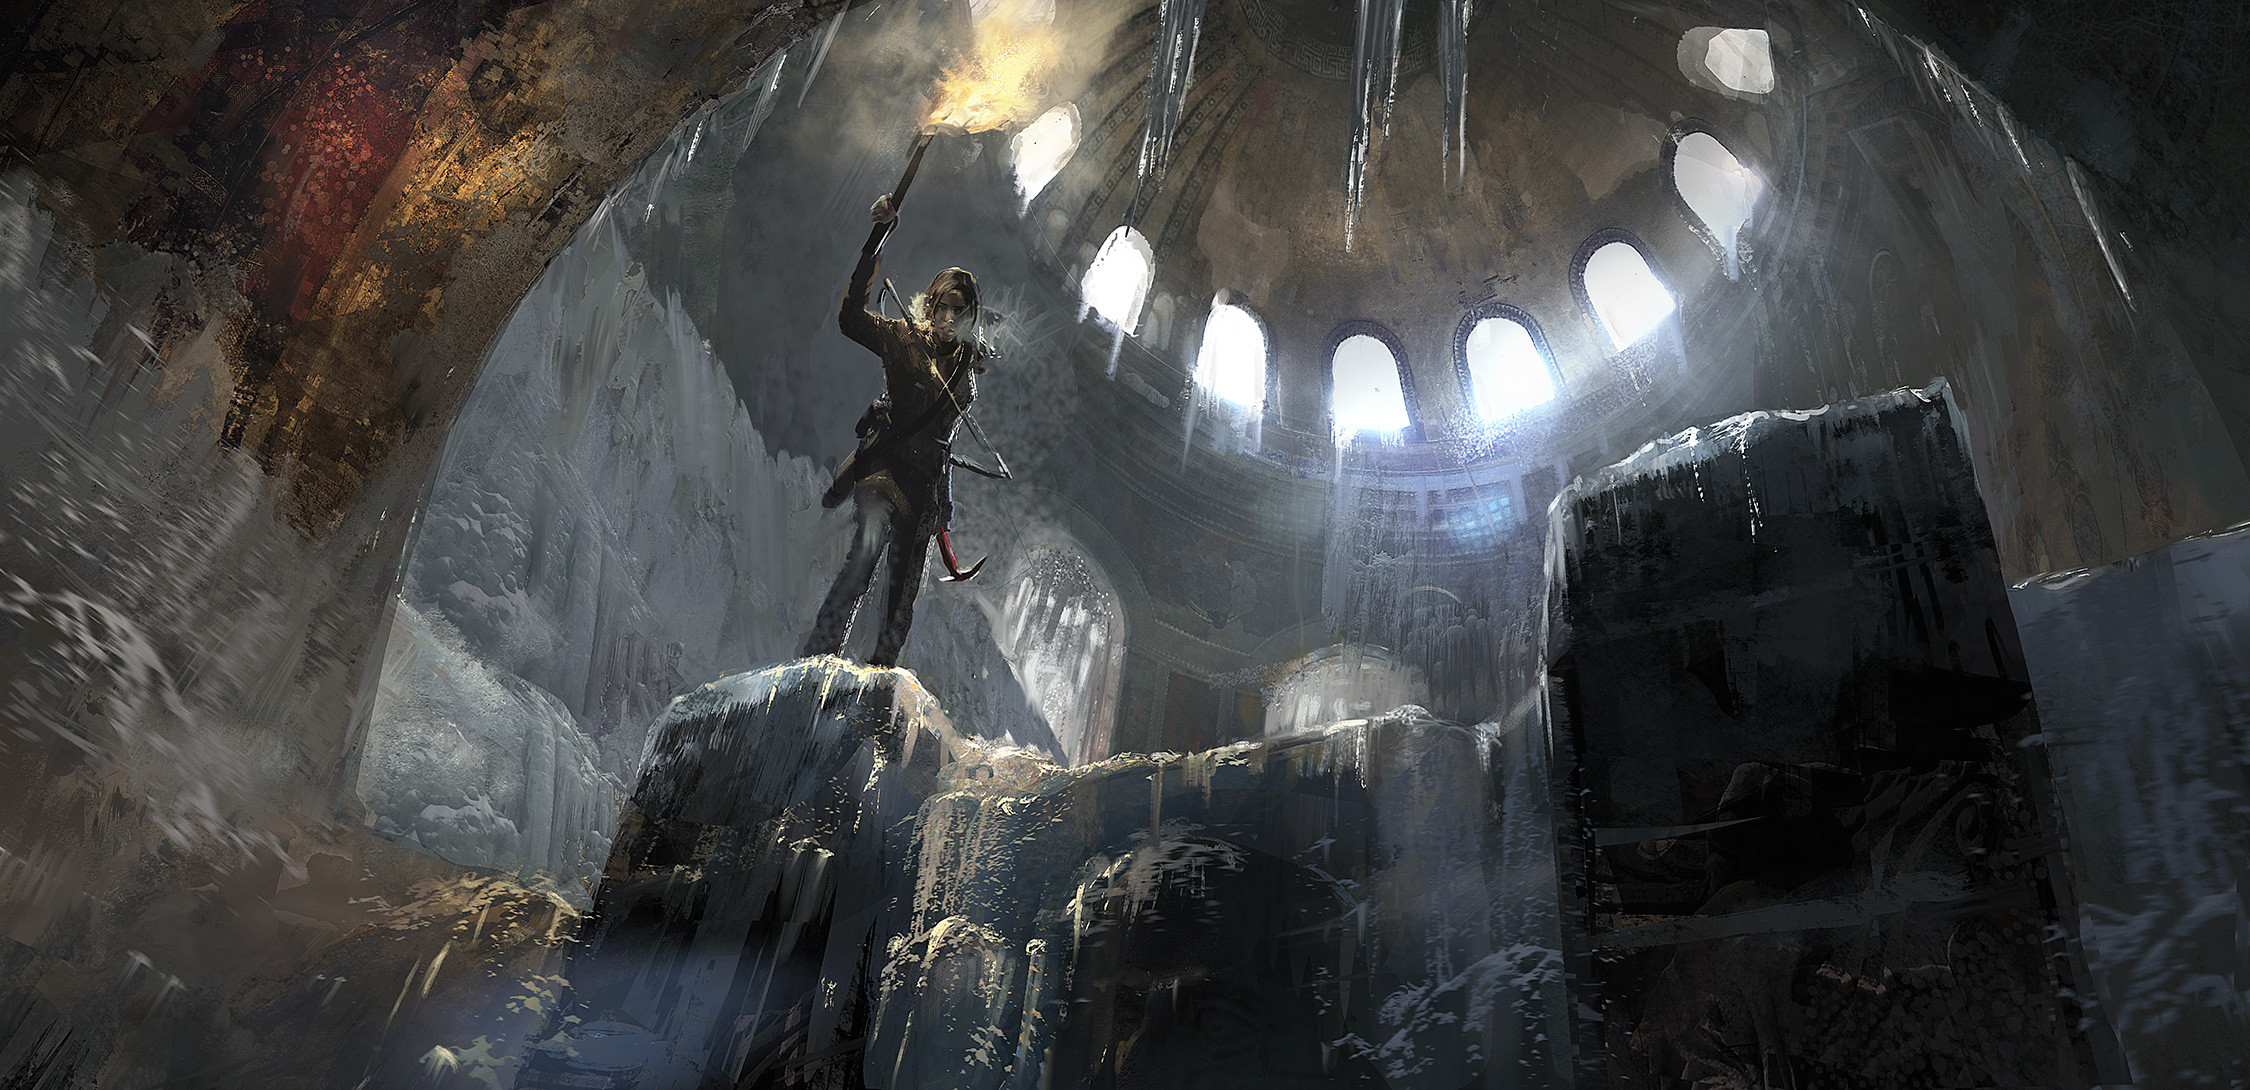 Rise Of The Tomb Raider Story Gameplay Details Revealed